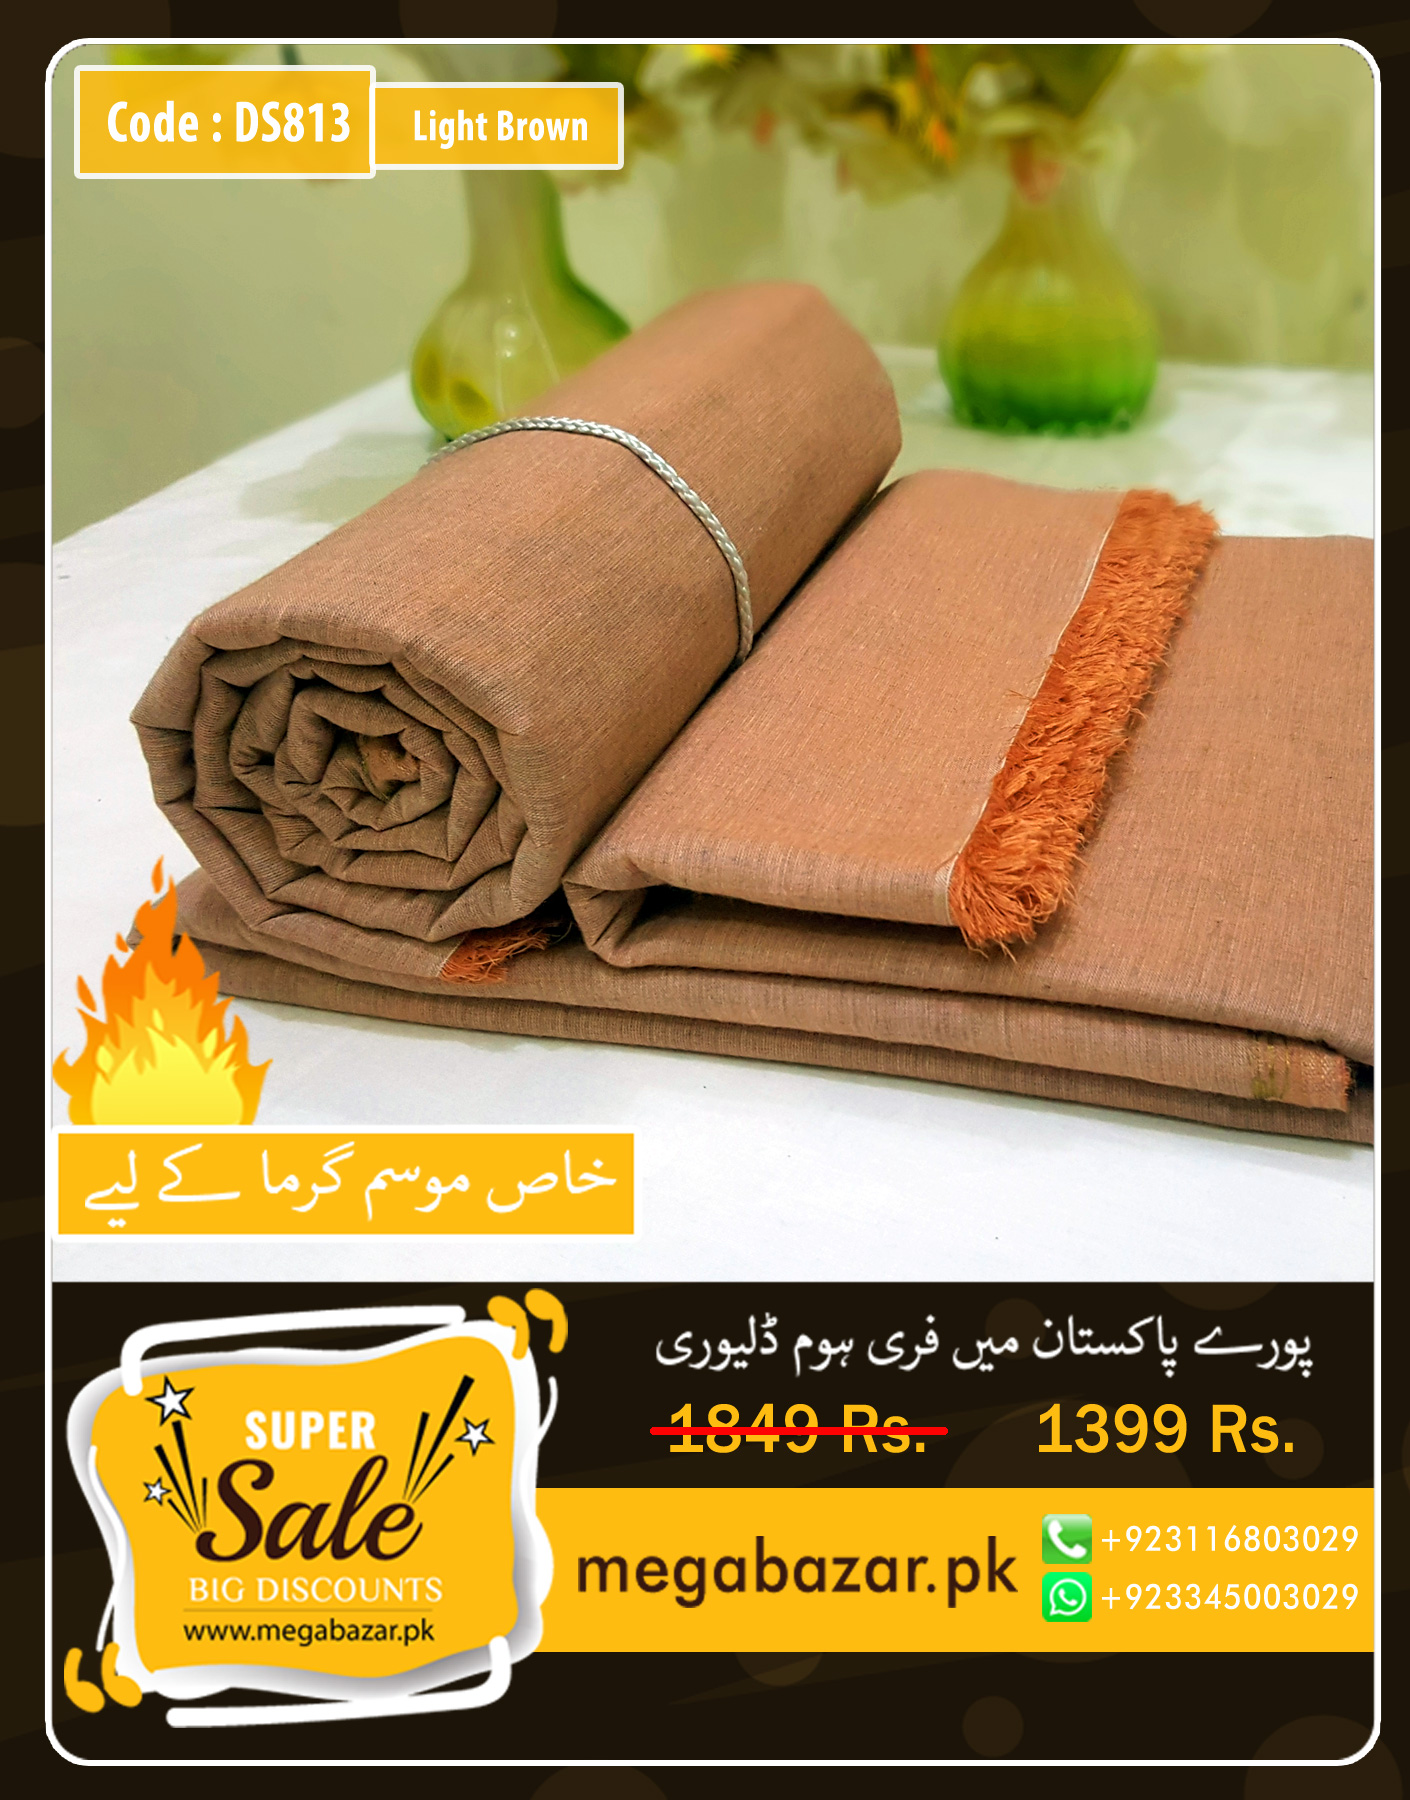 Light Brown Shade Summer Deluxe Khaddar